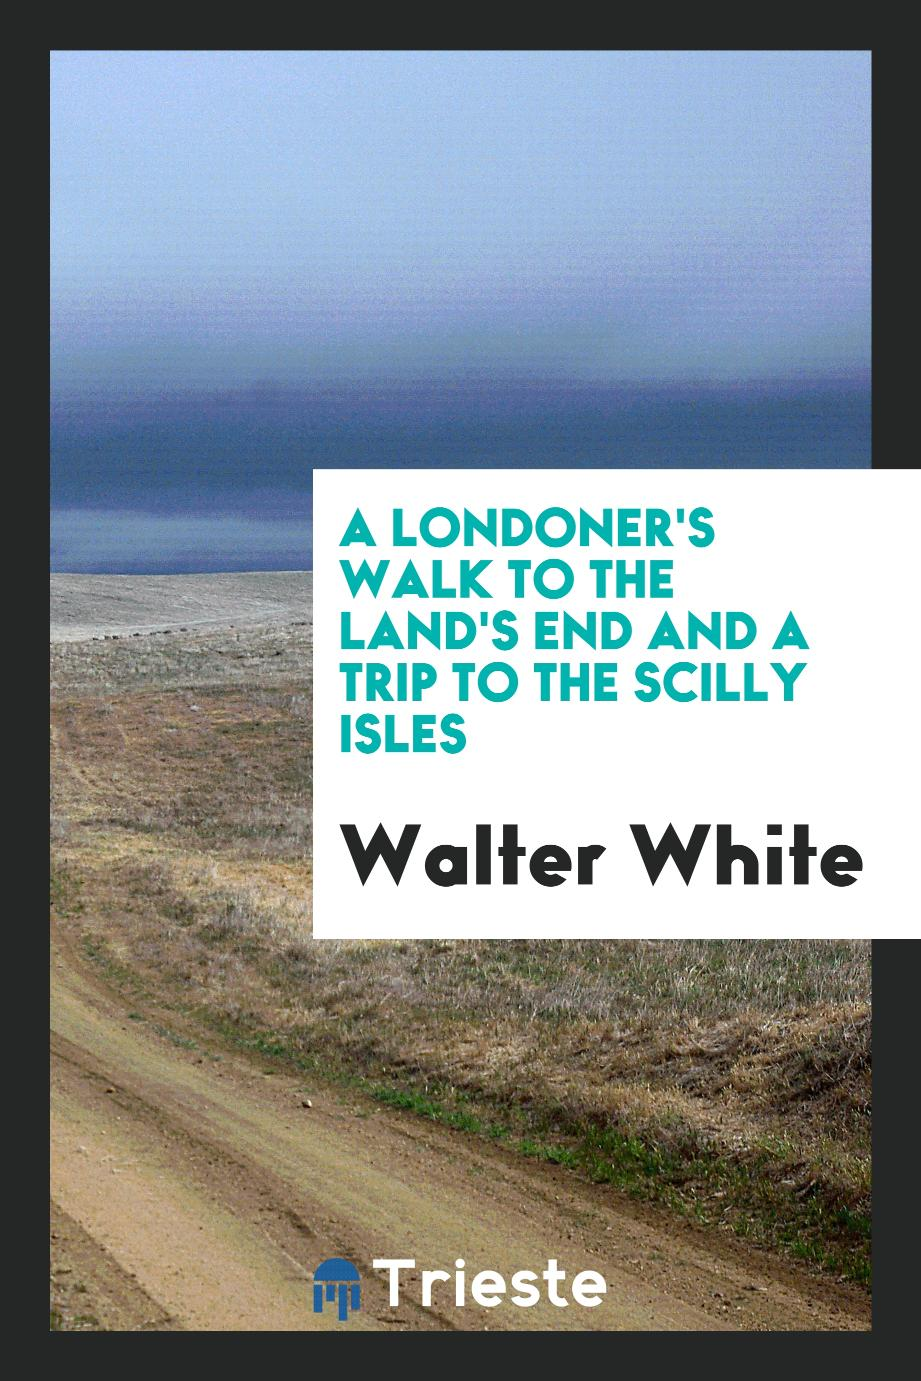 A Londoner's Walk to the Land's End and a Trip to the Scilly Isles